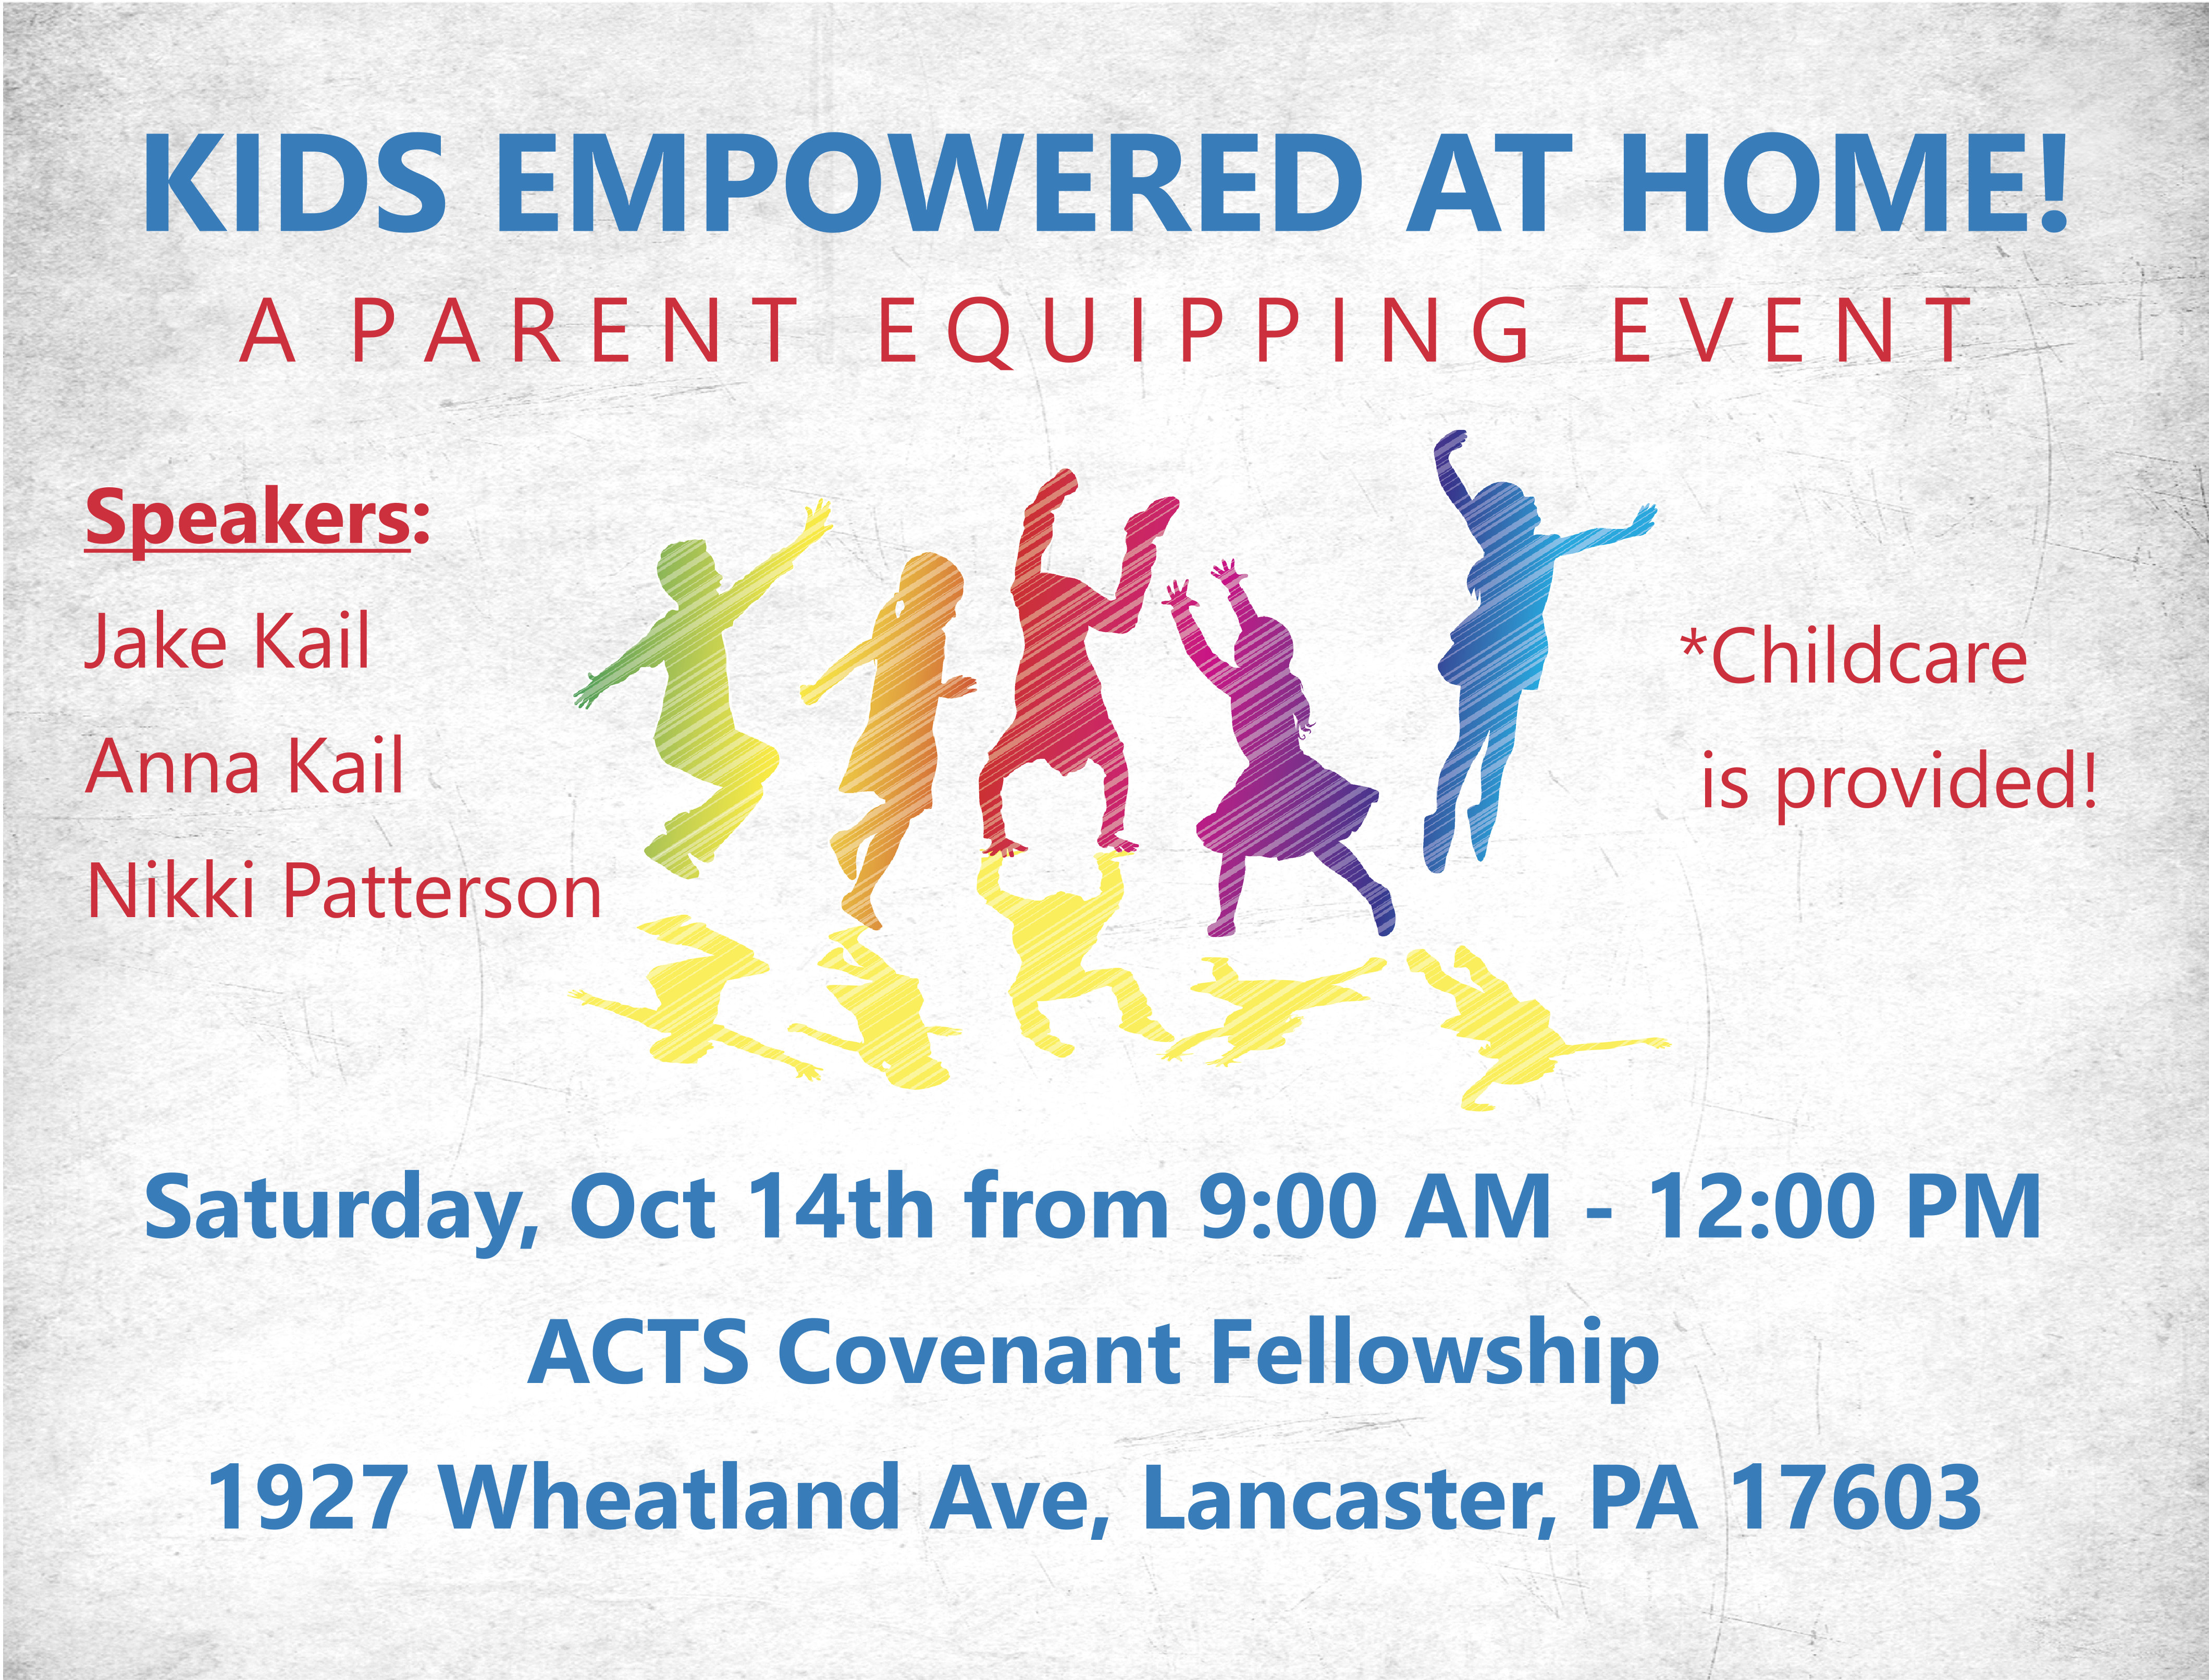 Kids Empowered at Home: A Parent Equipping Event!